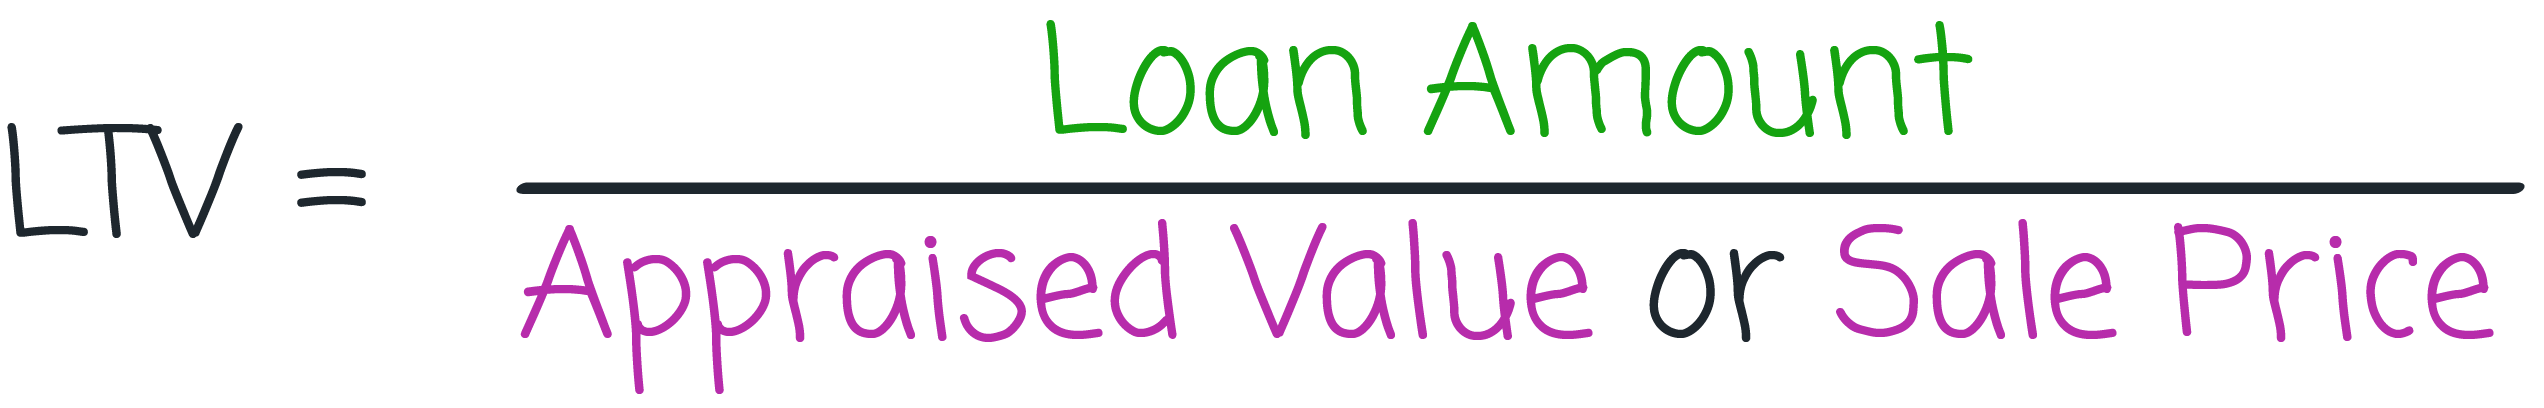 Loan to Value Ratio calculation